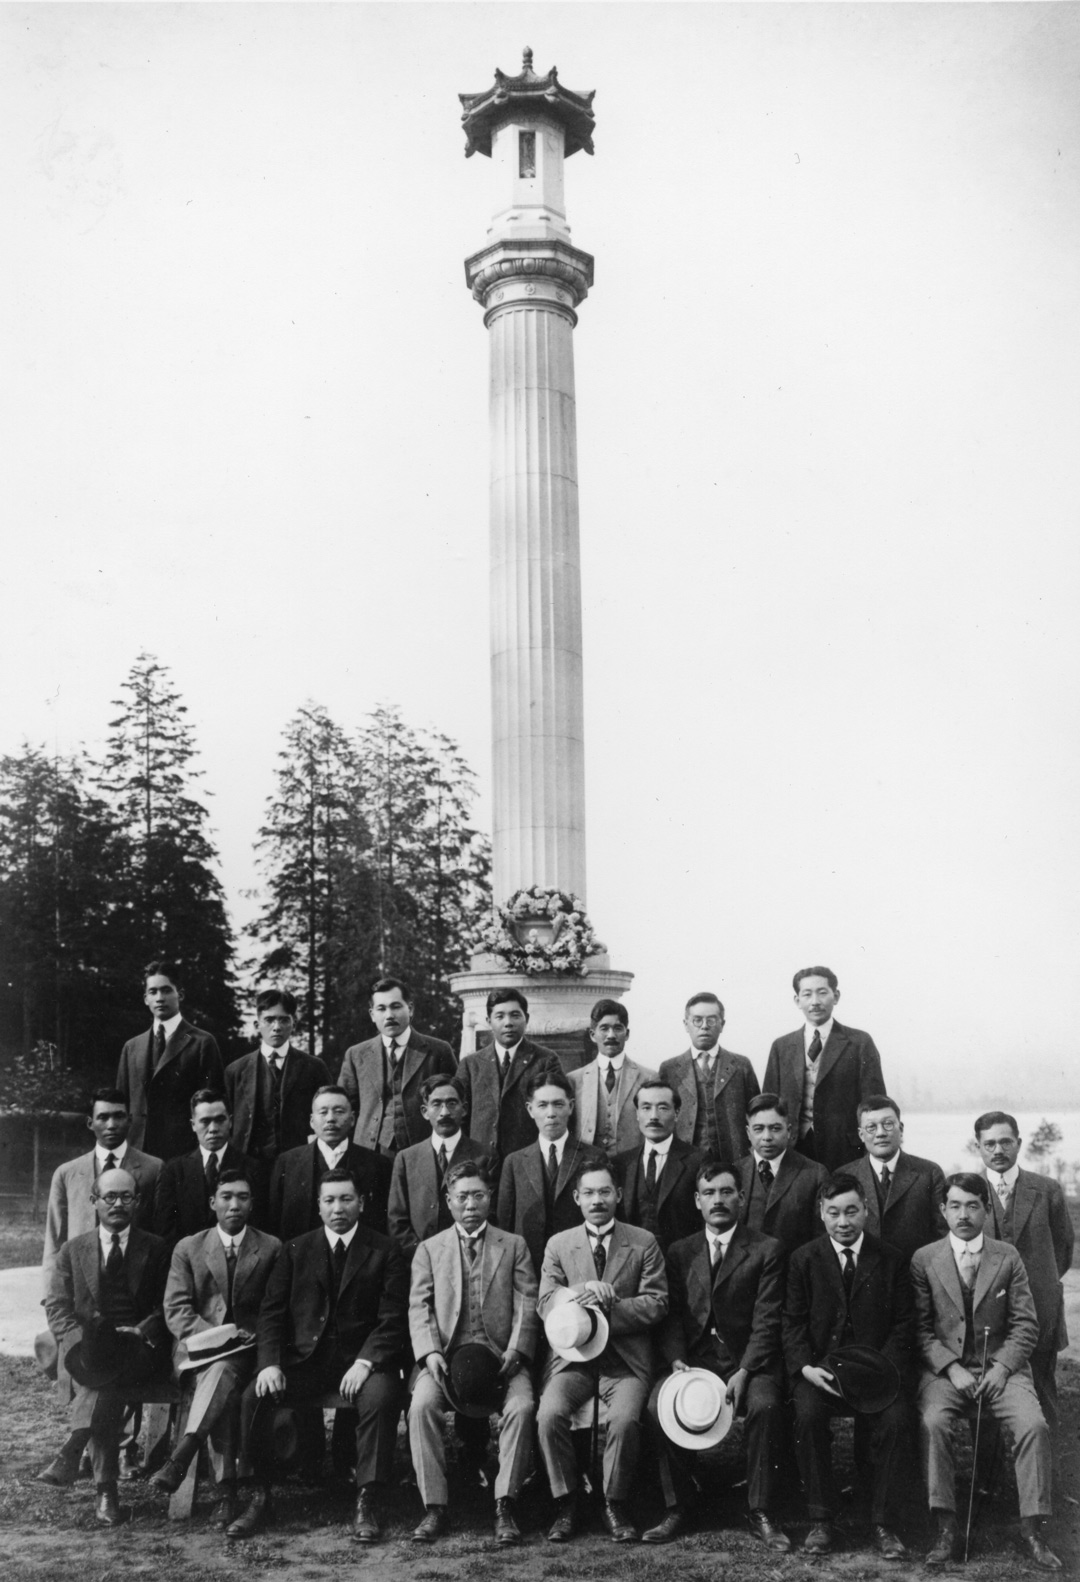 Members of the Canadian Japanese Association at the Japanese Canadian War Memorial in Stanley Park, circa 1920. NNM 1994.41.14